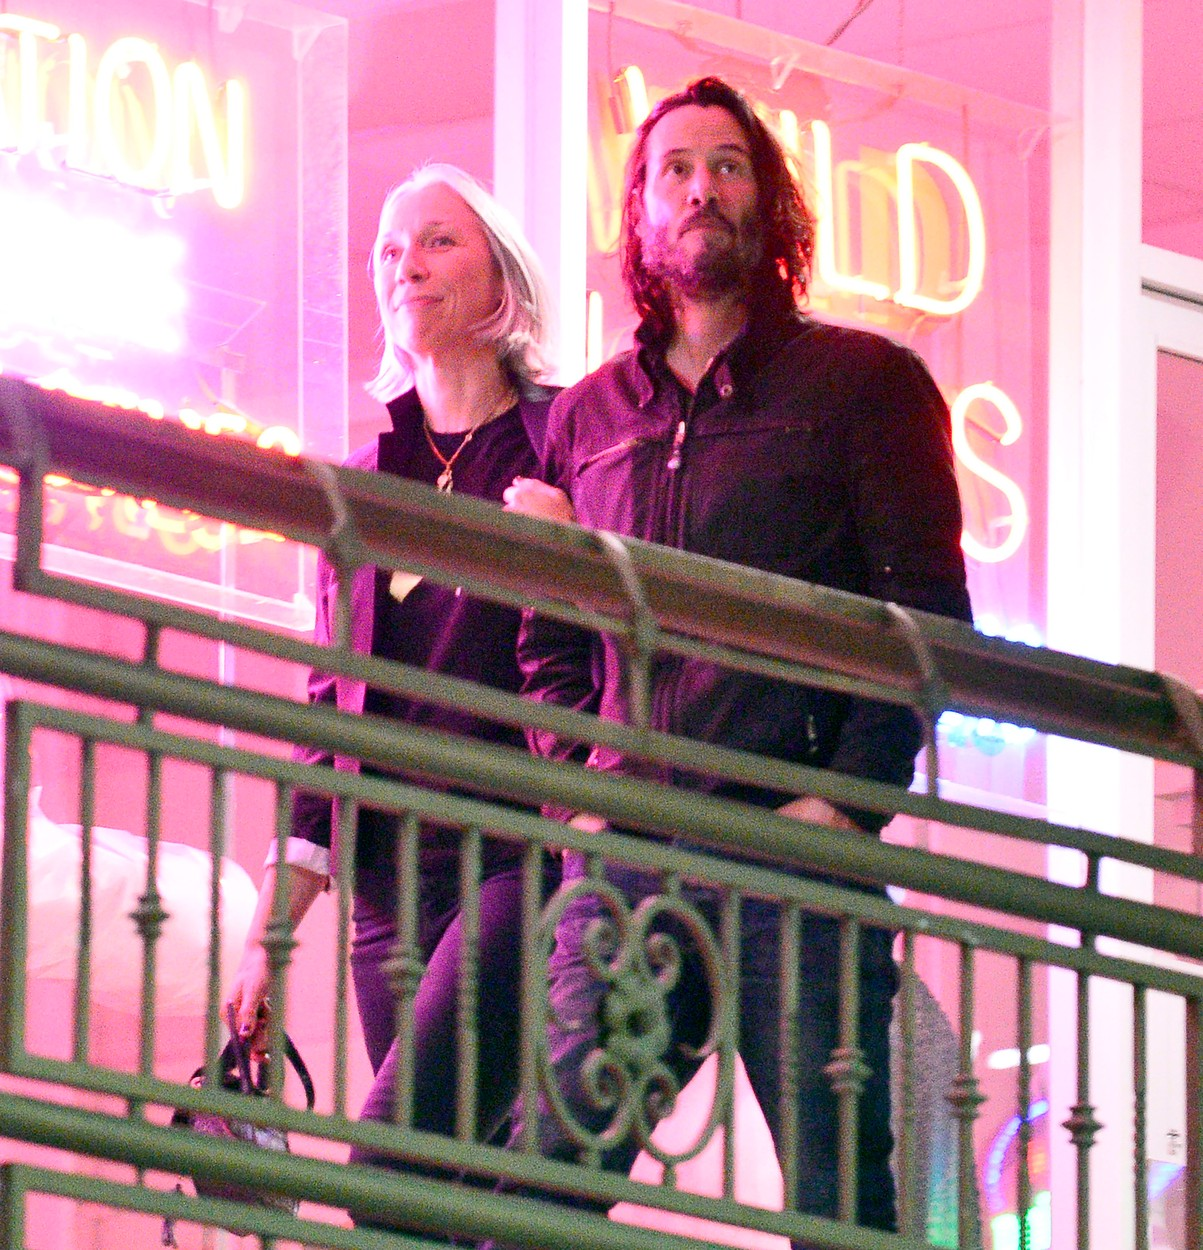 EXCLUSIVE: Keanu Reeves out for dinner with new girlfriend Alexandra Grant in Los Angeles. Photographs taken October 18th 2019. 04 Nov 2019, Image: 477899813, License: Rights-managed, Restrictions: World Rights, Model Release: no, Credit line: MEGA / Mega Agency / Profimedia